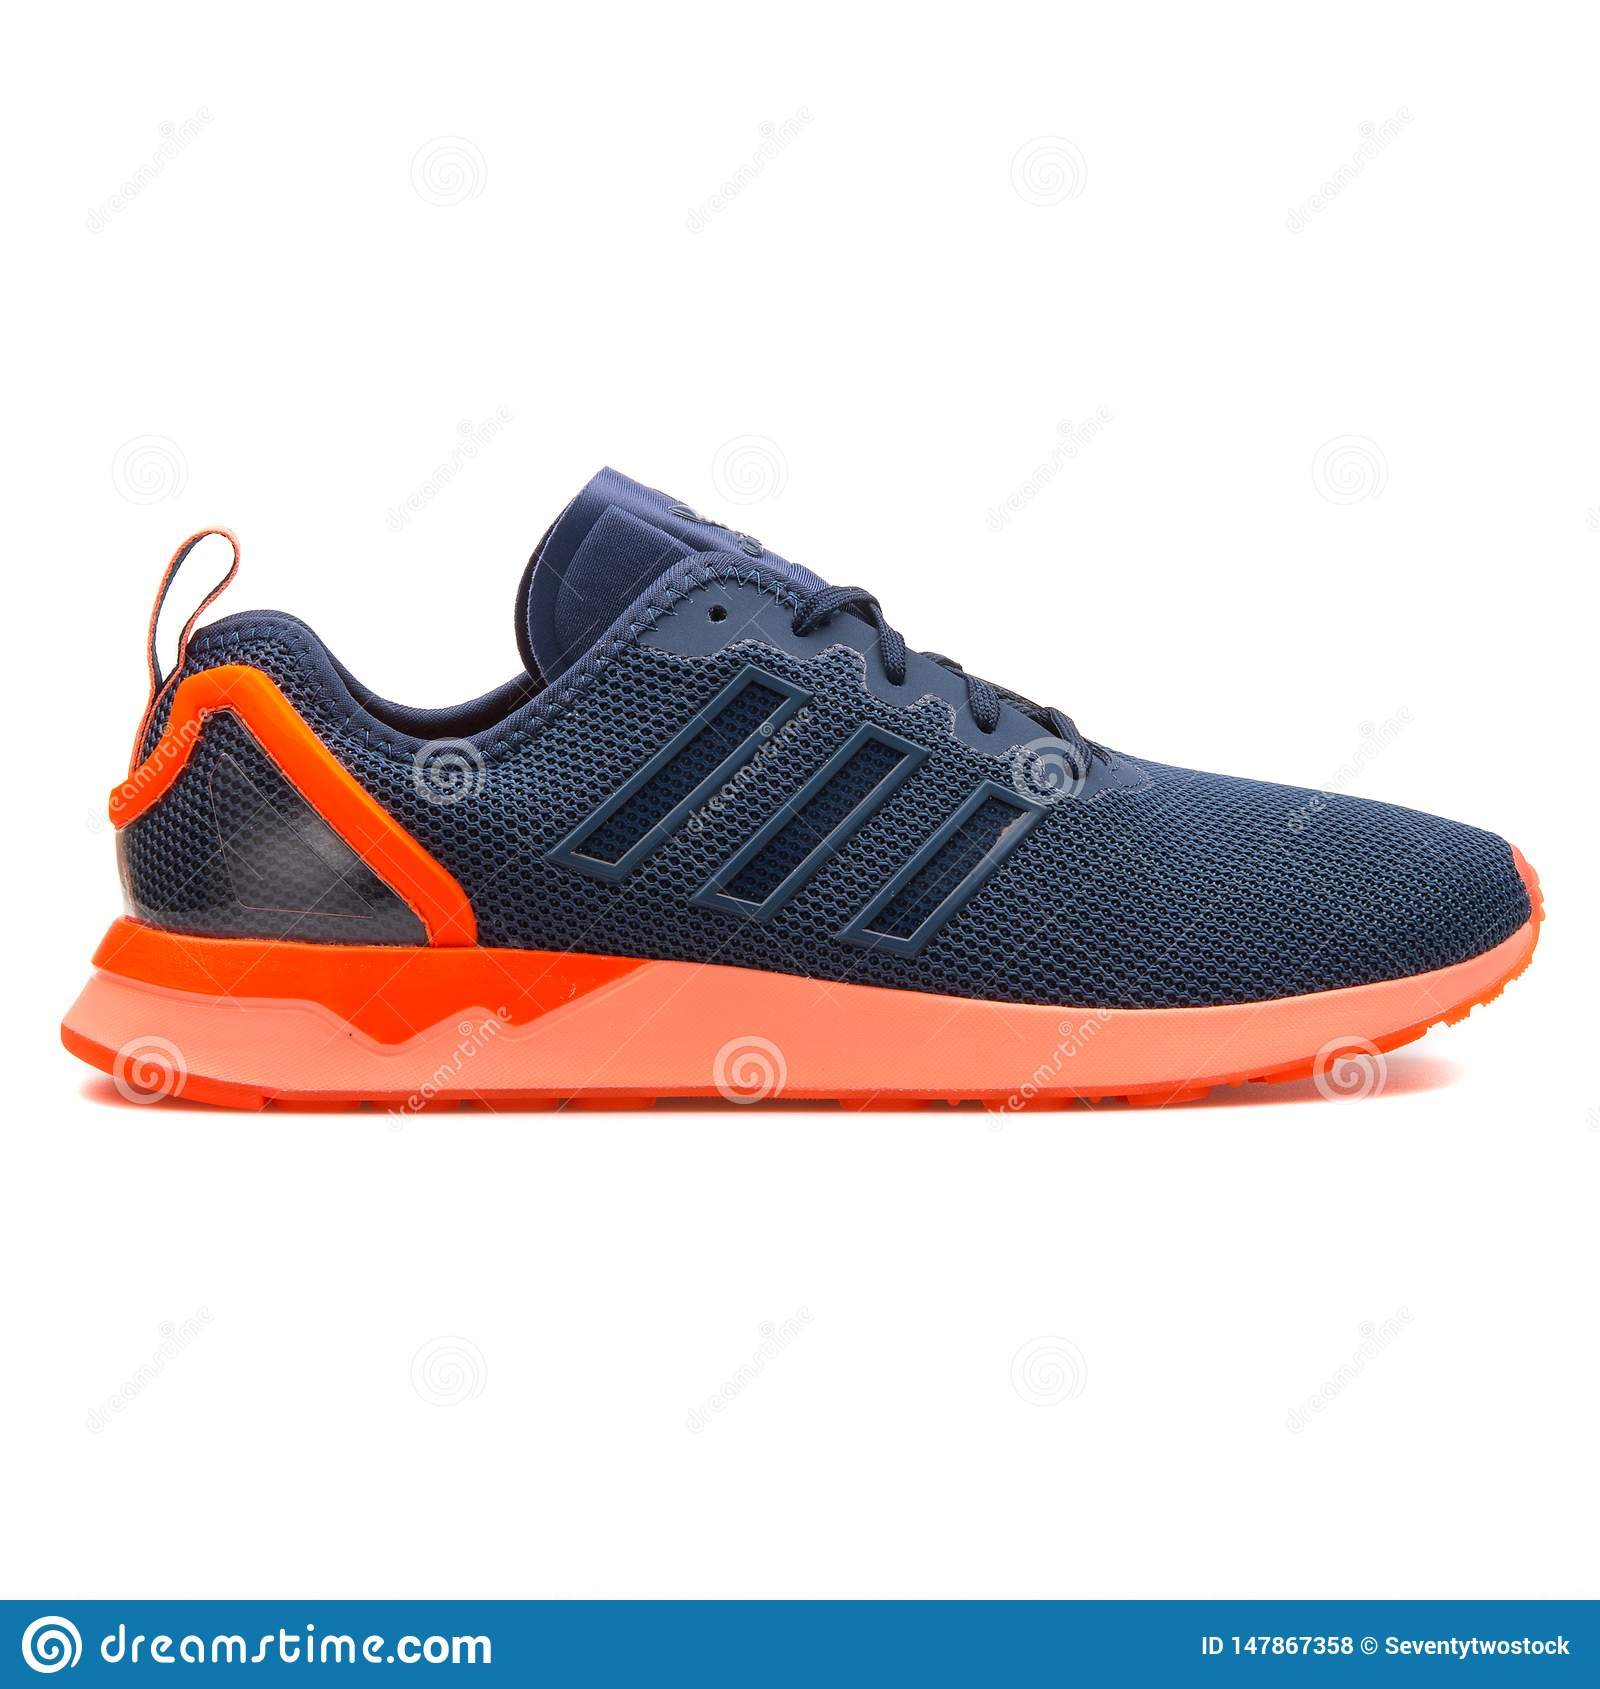 adidas zx flux orange bleu